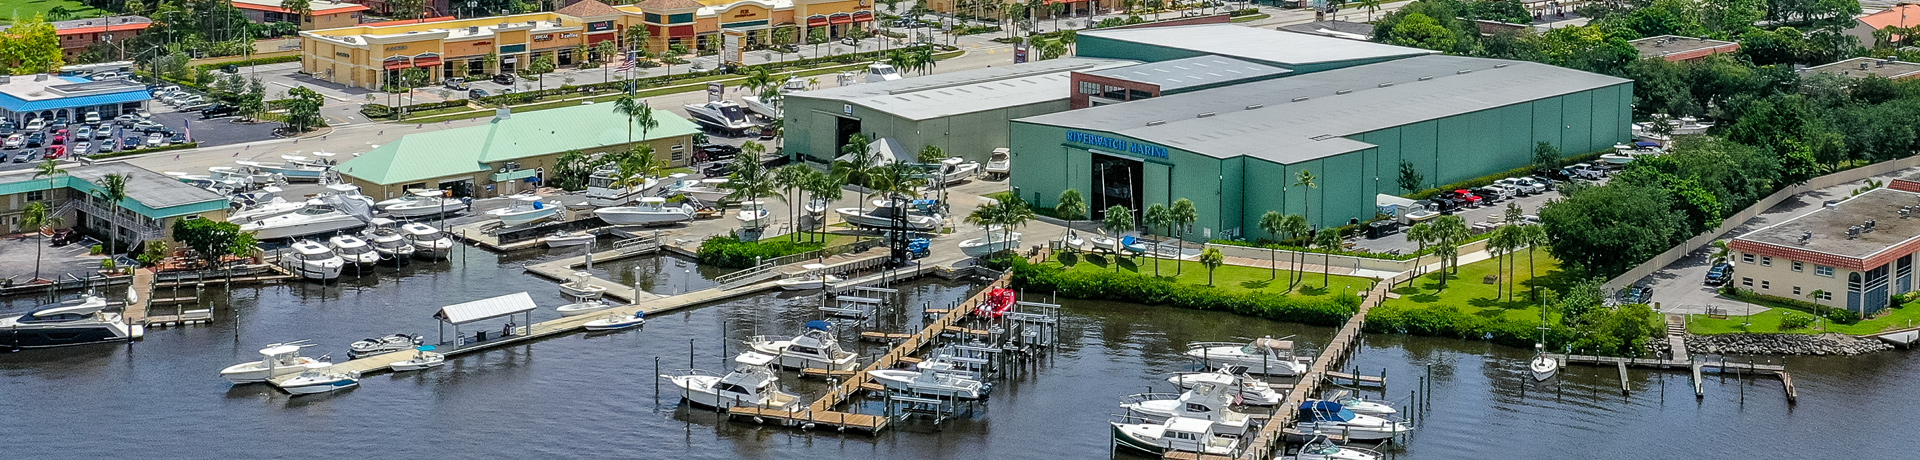 Riverwatch Marina Aerial View